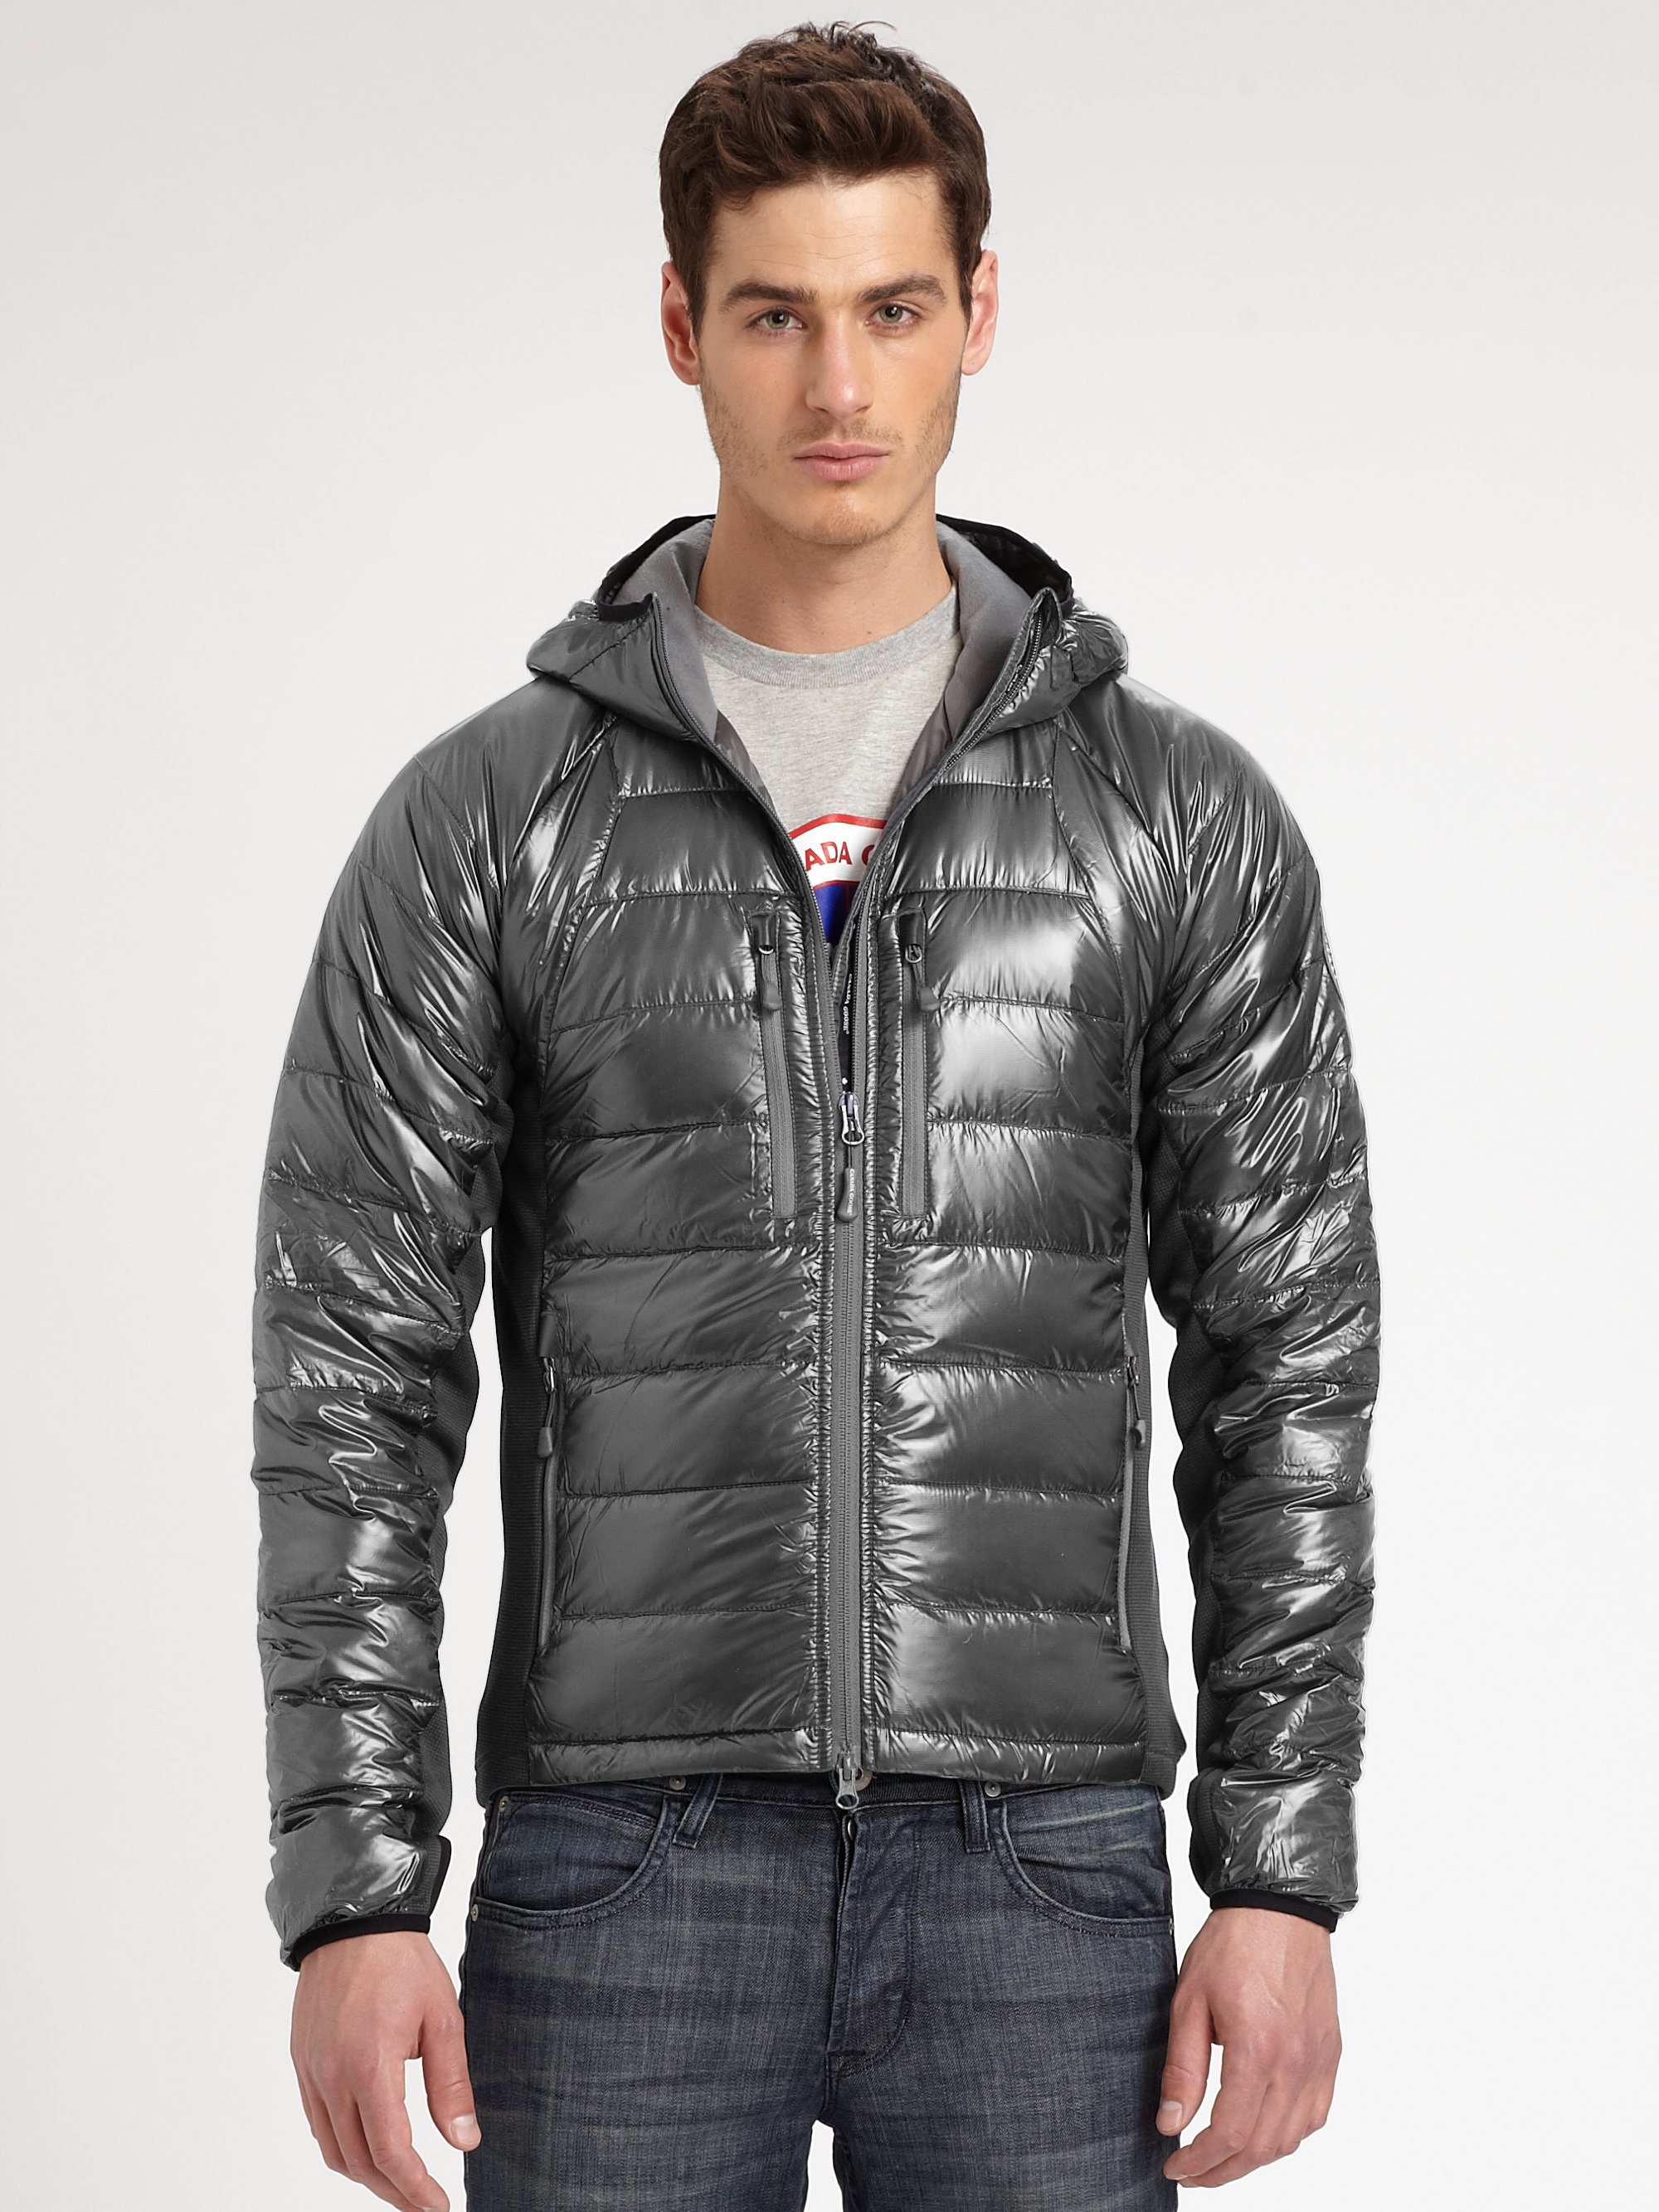 canadian goose jacket uk